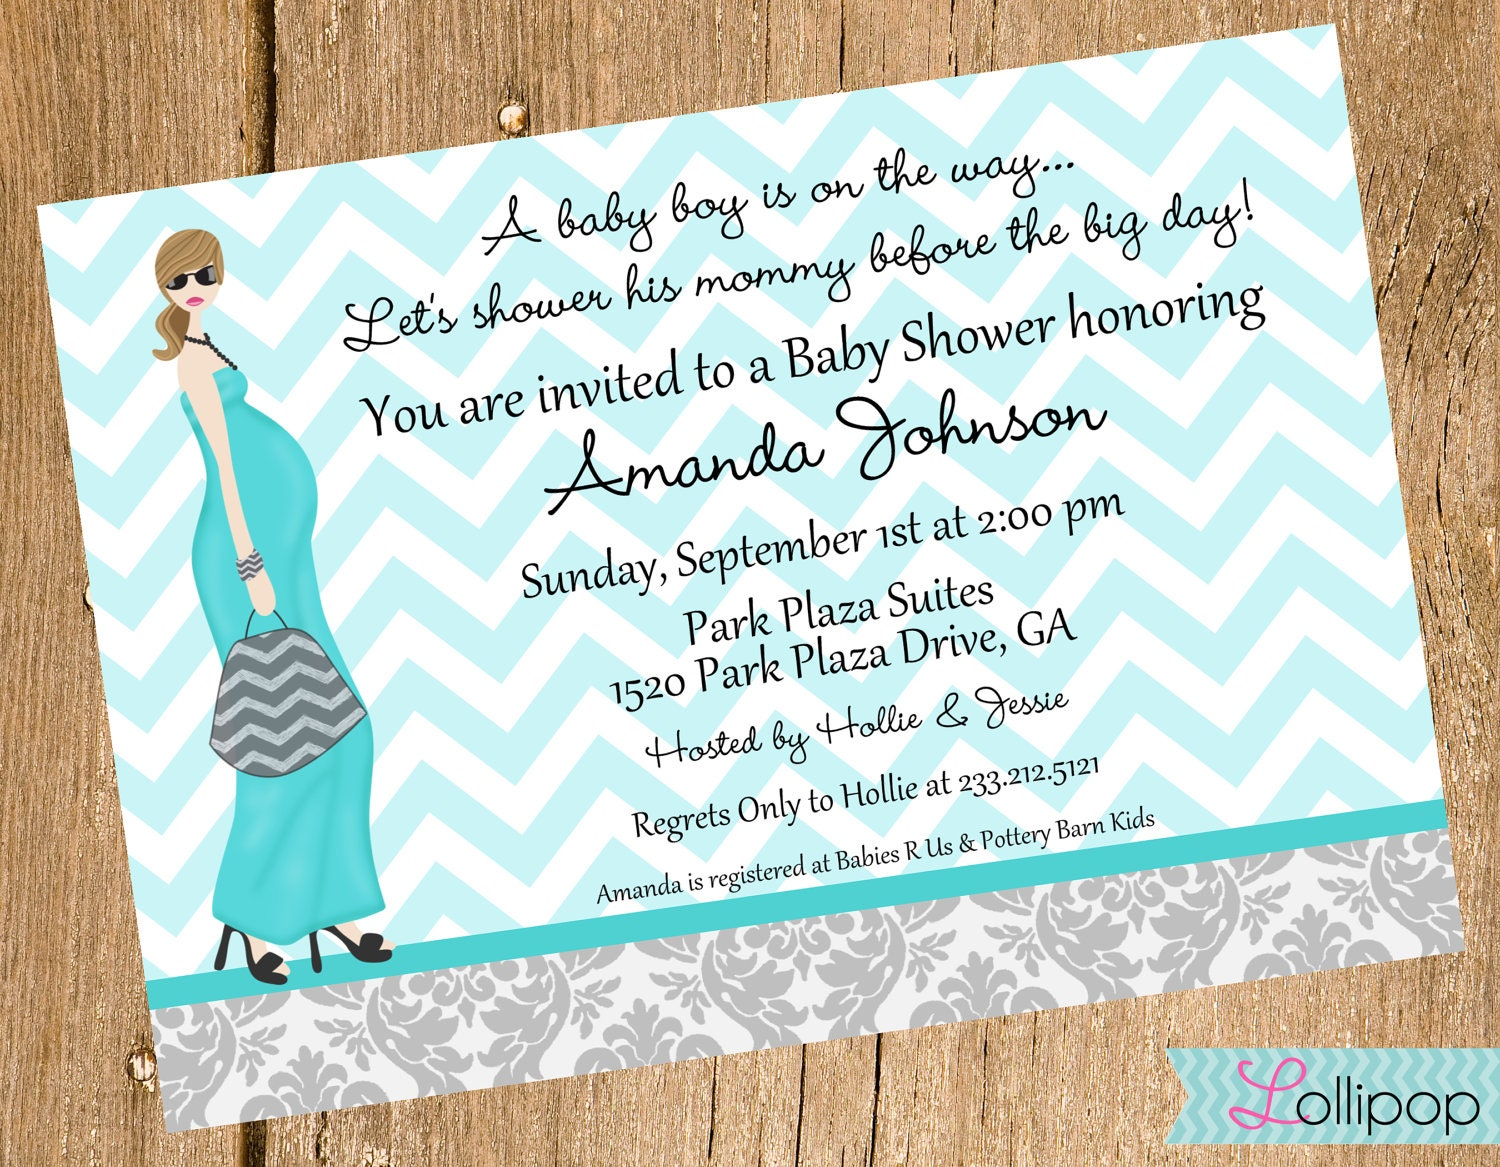 5X7 Invitation Printing with awesome invitations design